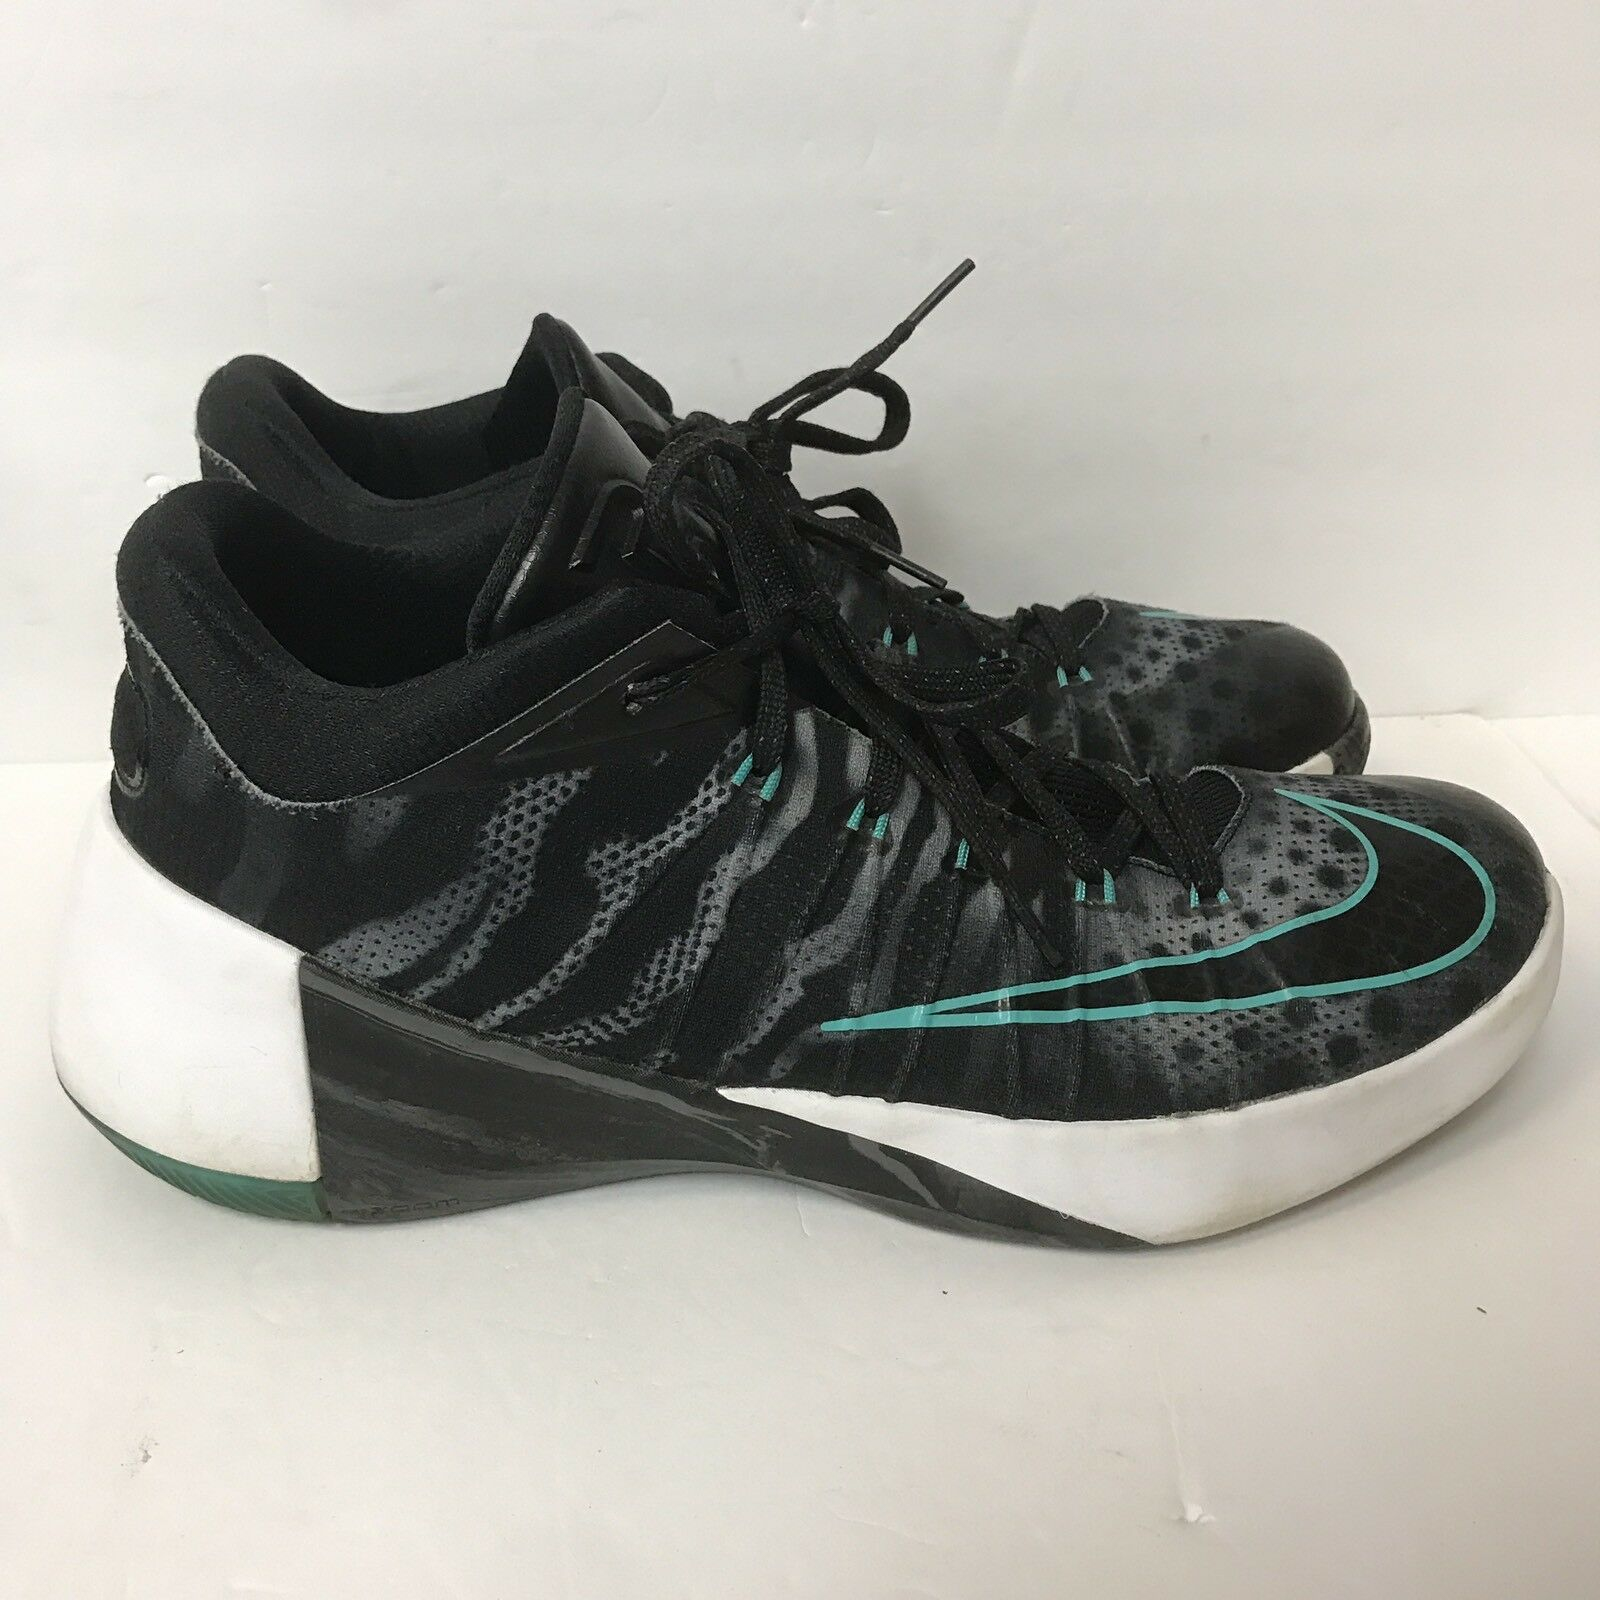 Nike Shoes Sneakers DC Men Comfortable The latest discount shoes for men and women